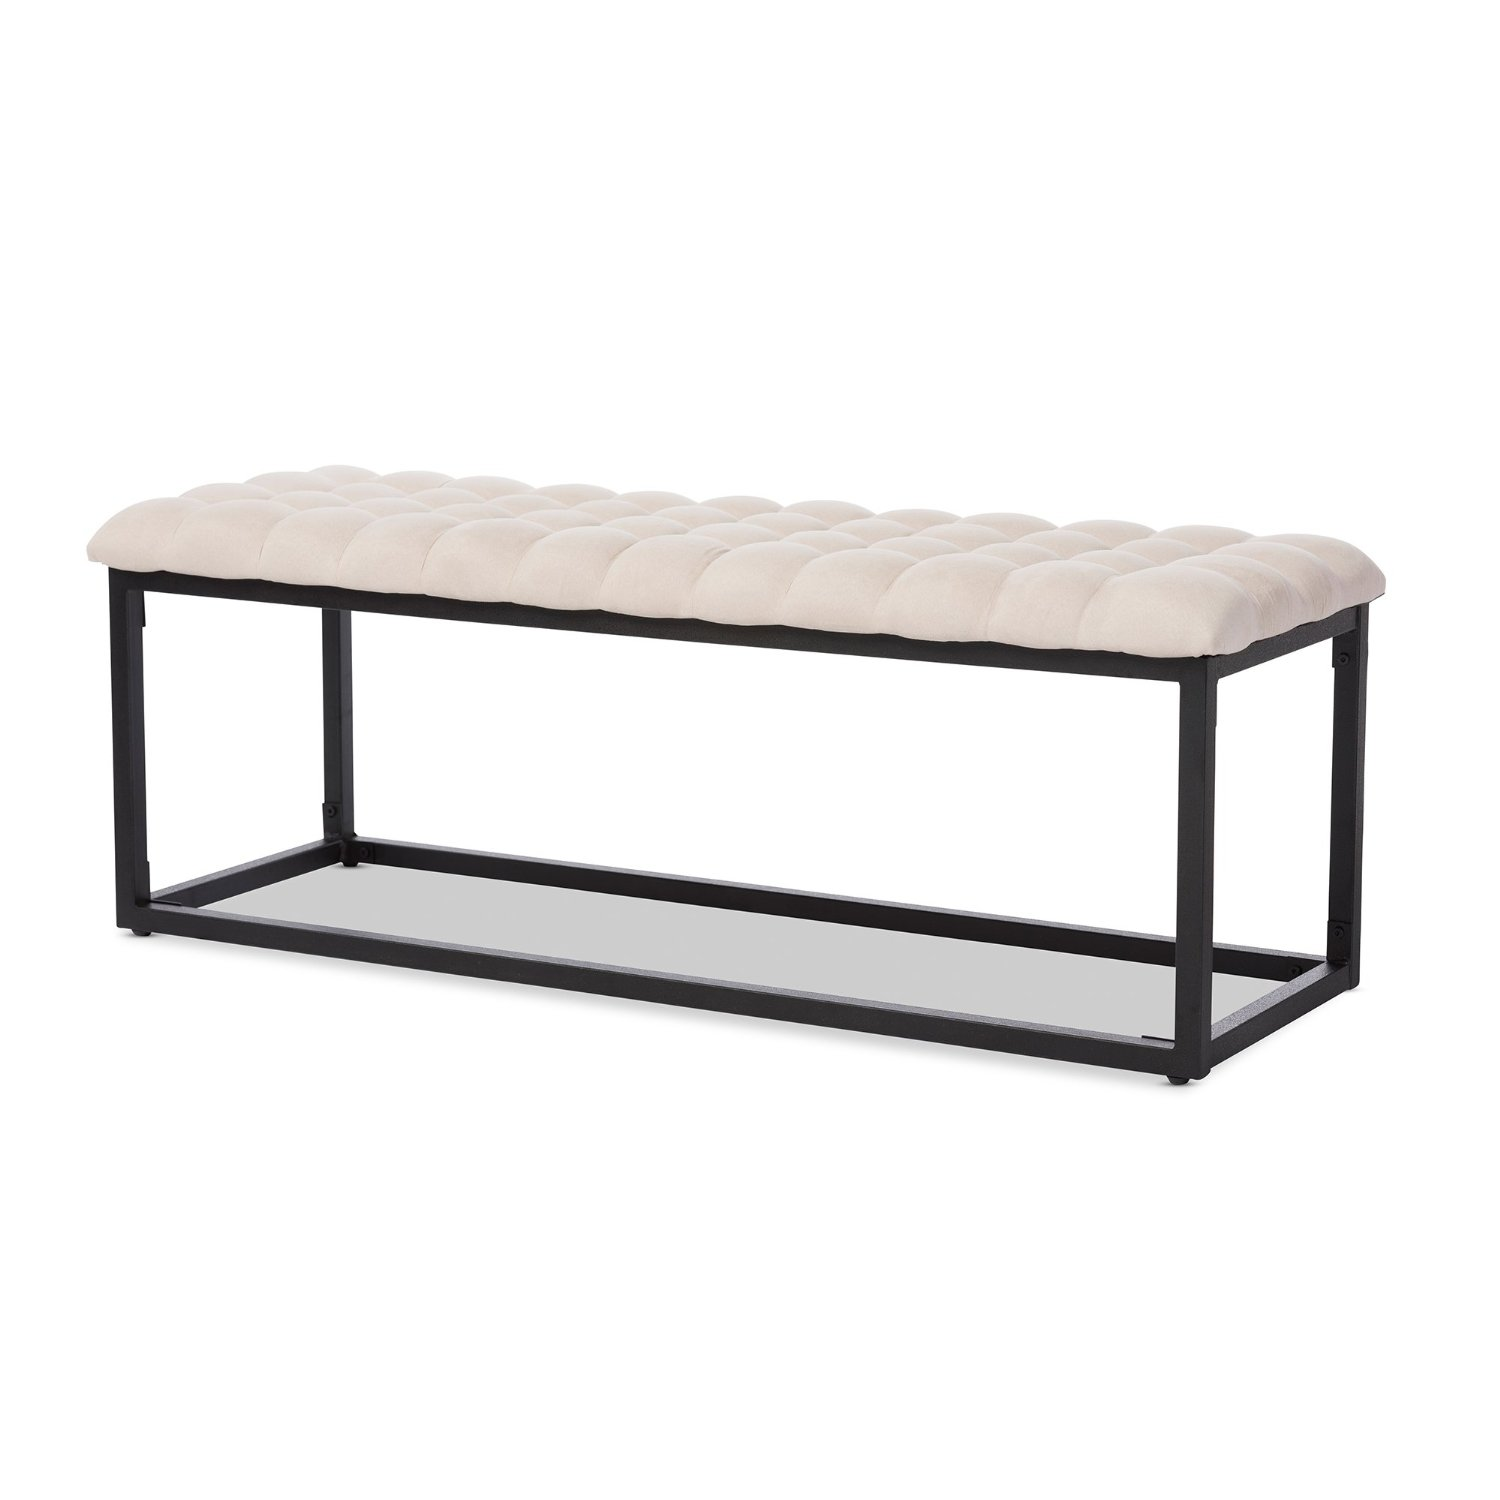 Baxton Studio Zephyr Tufted Coffee Table Ottoman Bench